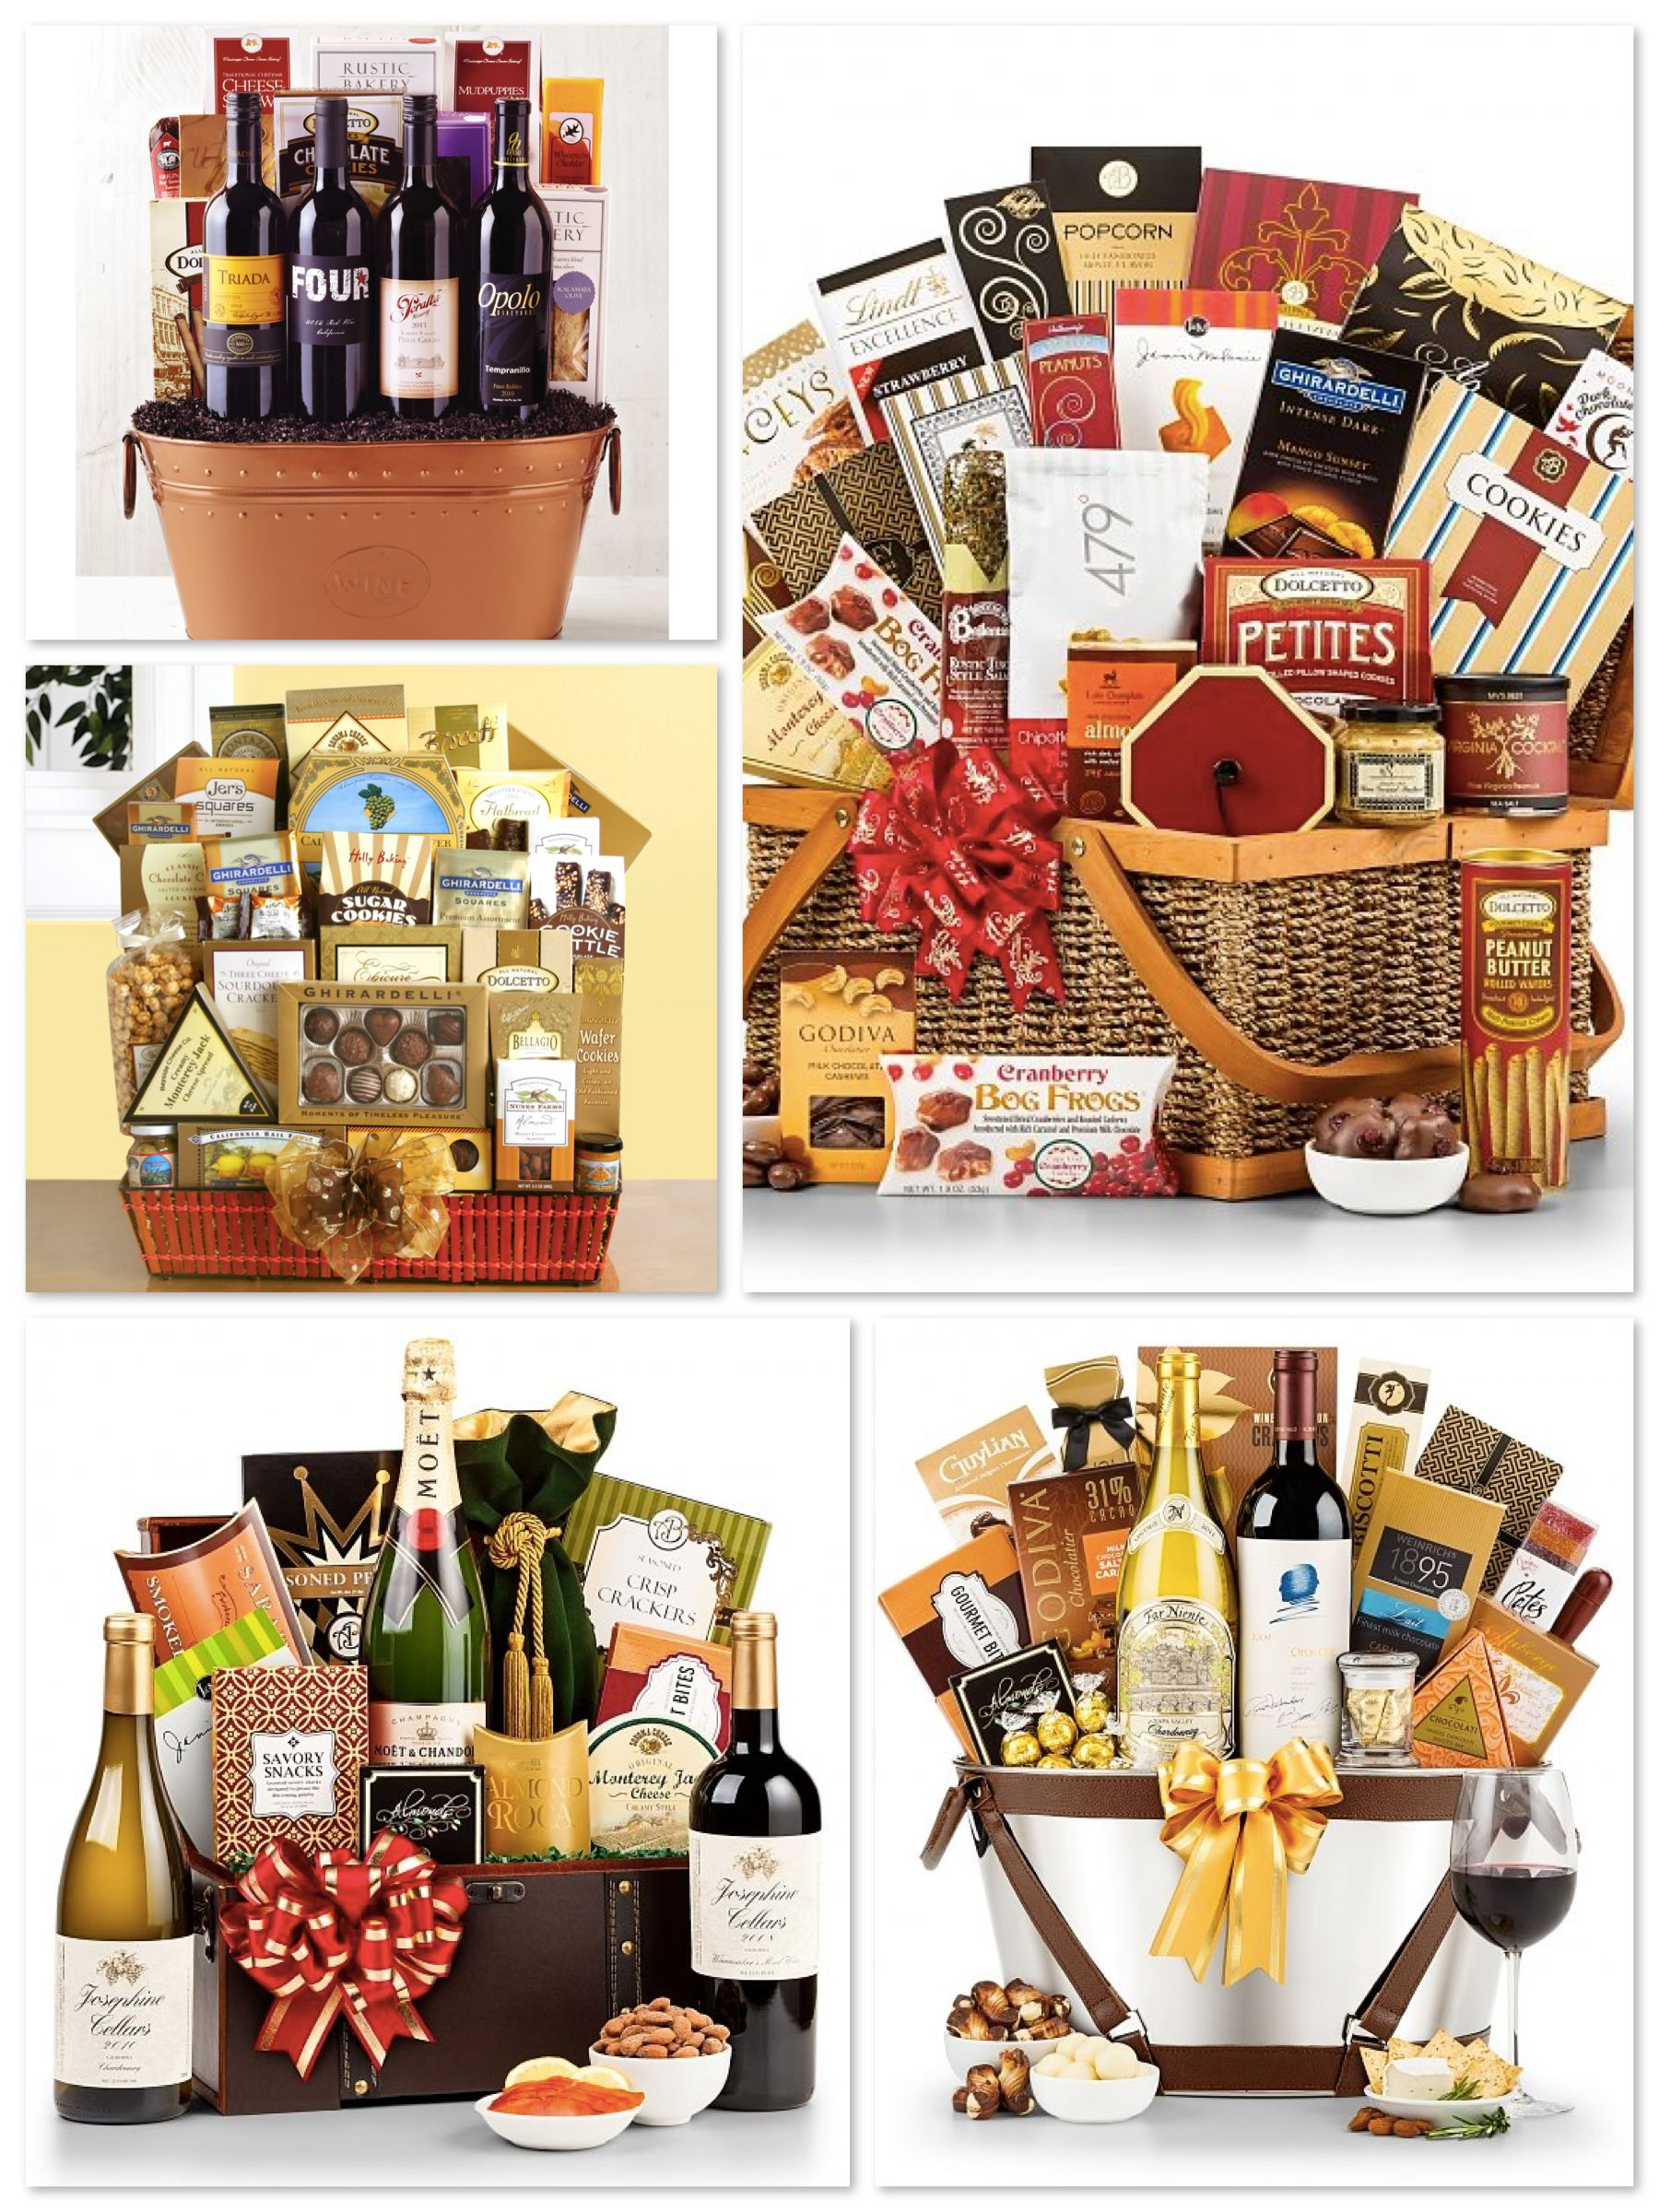 Best realtor closing gift ideas over 10000 client